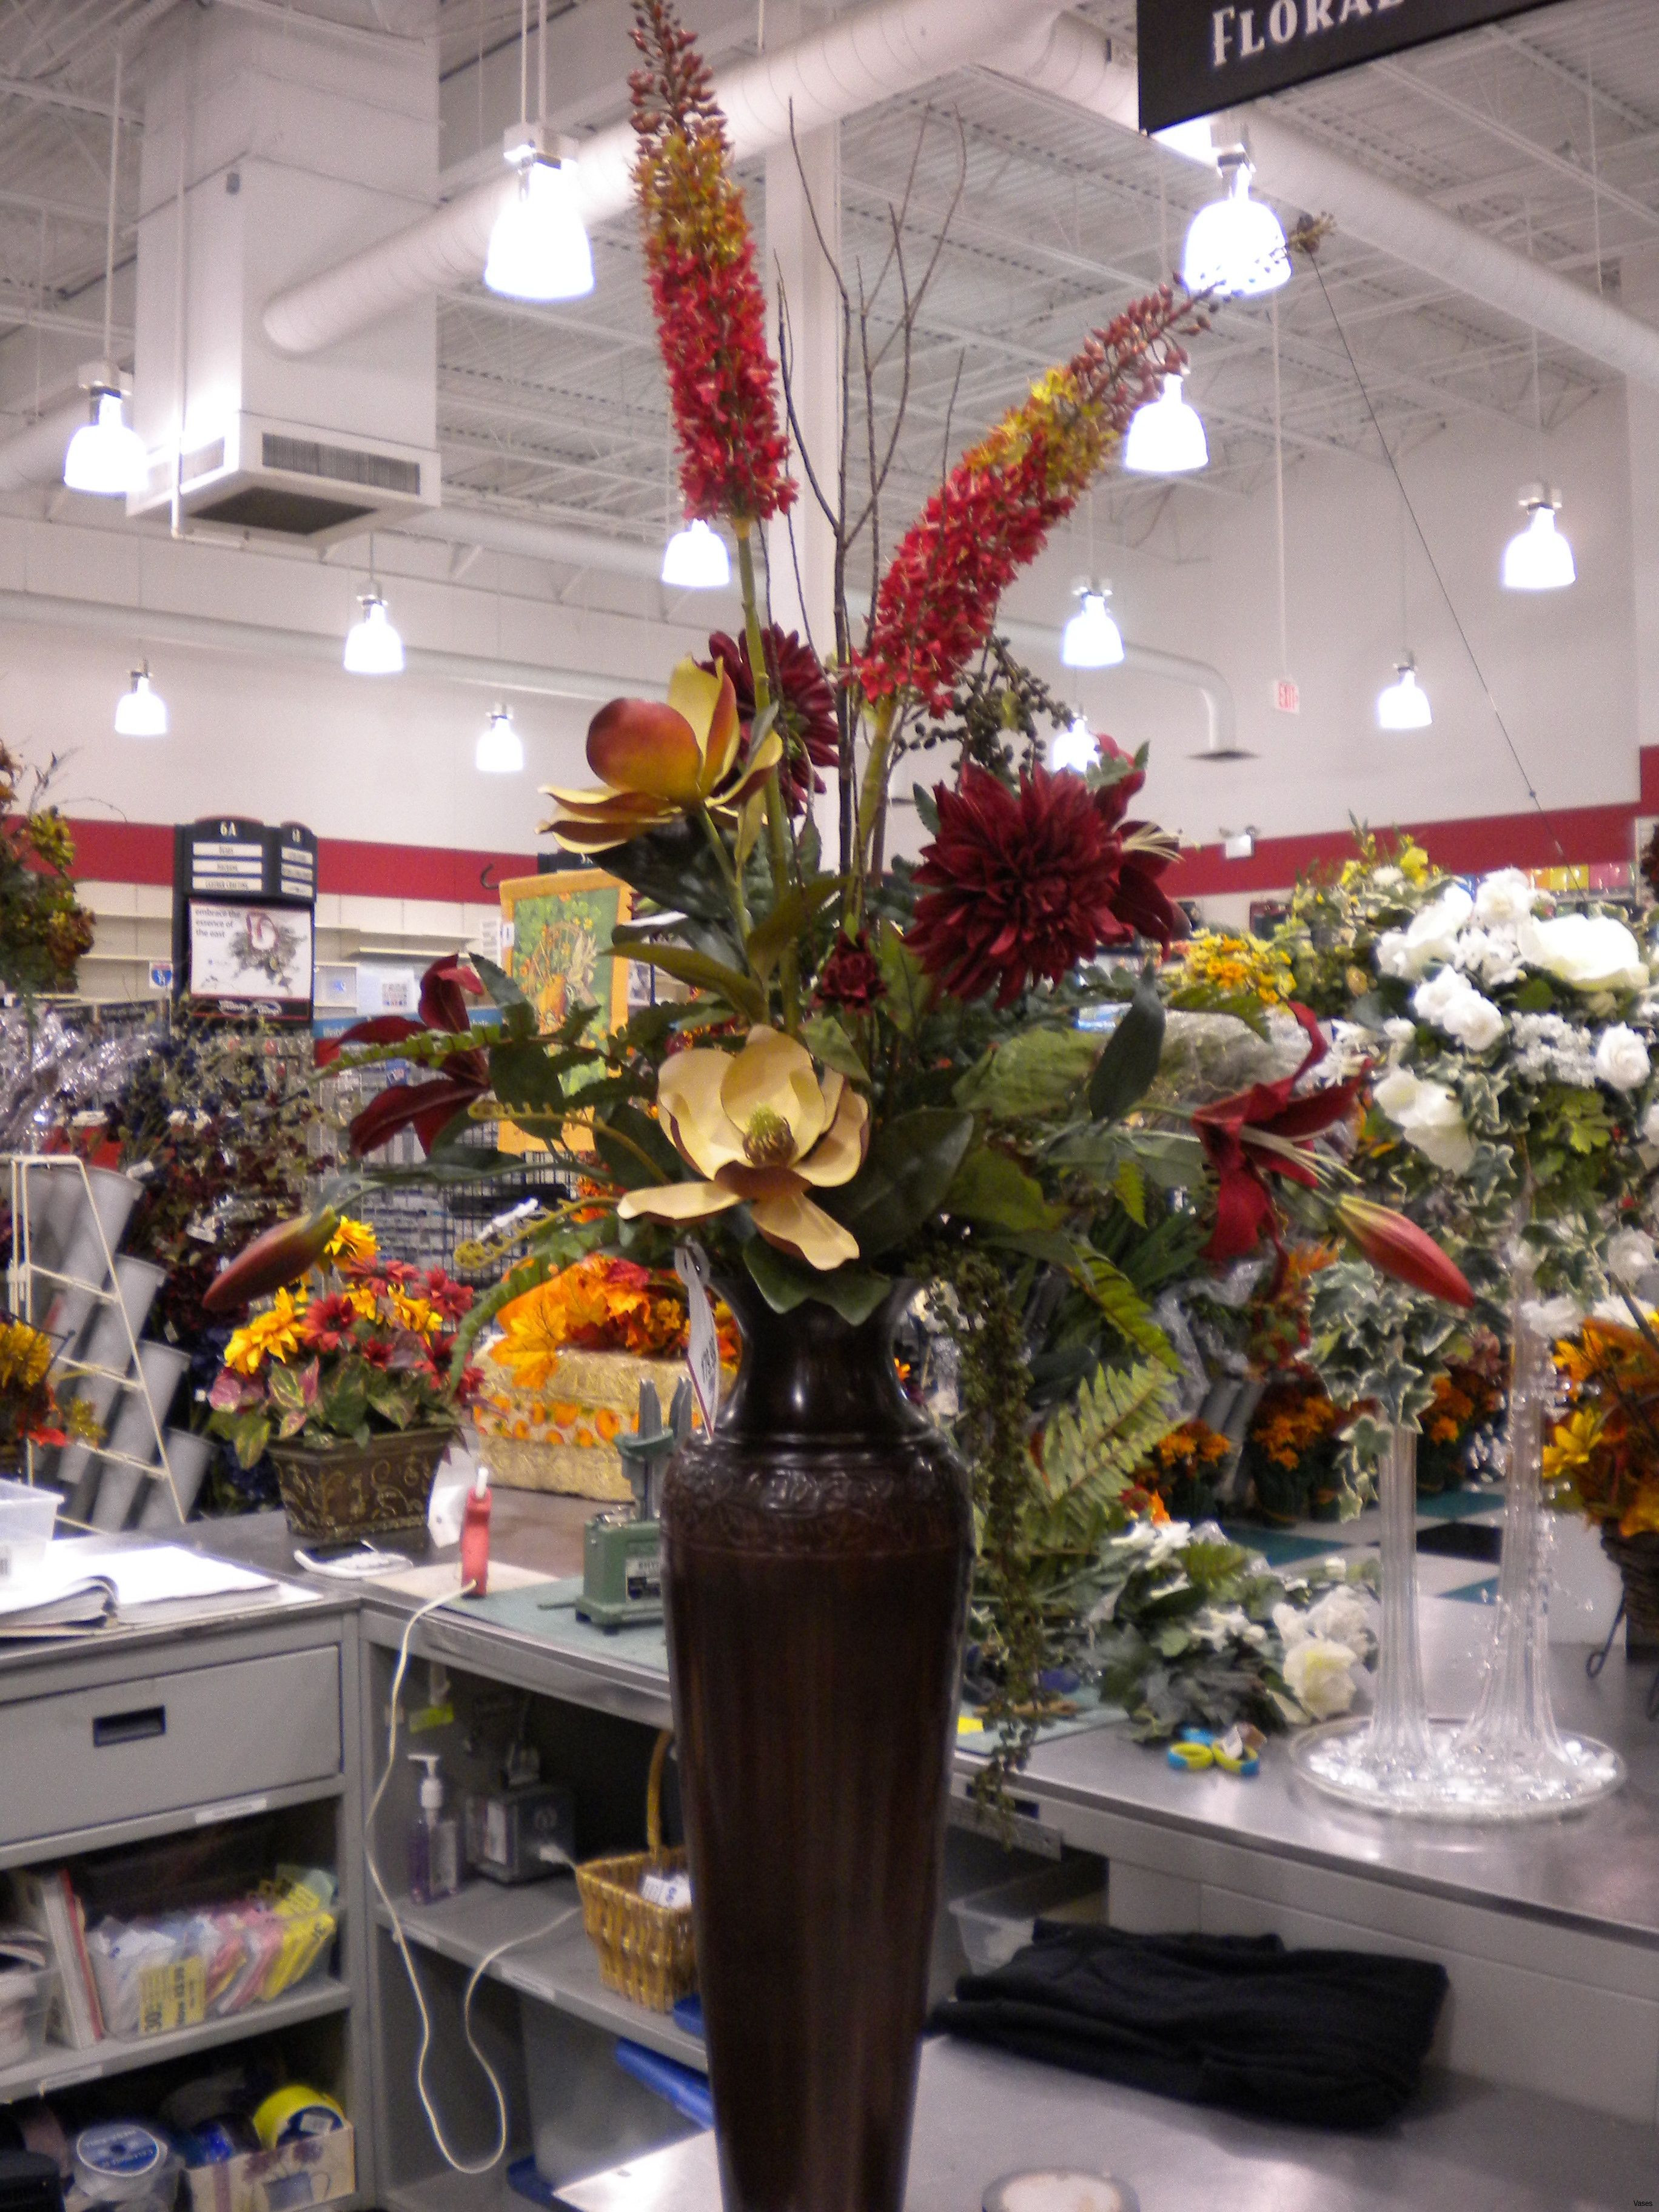 wholesale glass vases los angeles ca of 23 flowers in a vase the weekly world inside different kinds flowers elegant h vases vase artificial flowers i